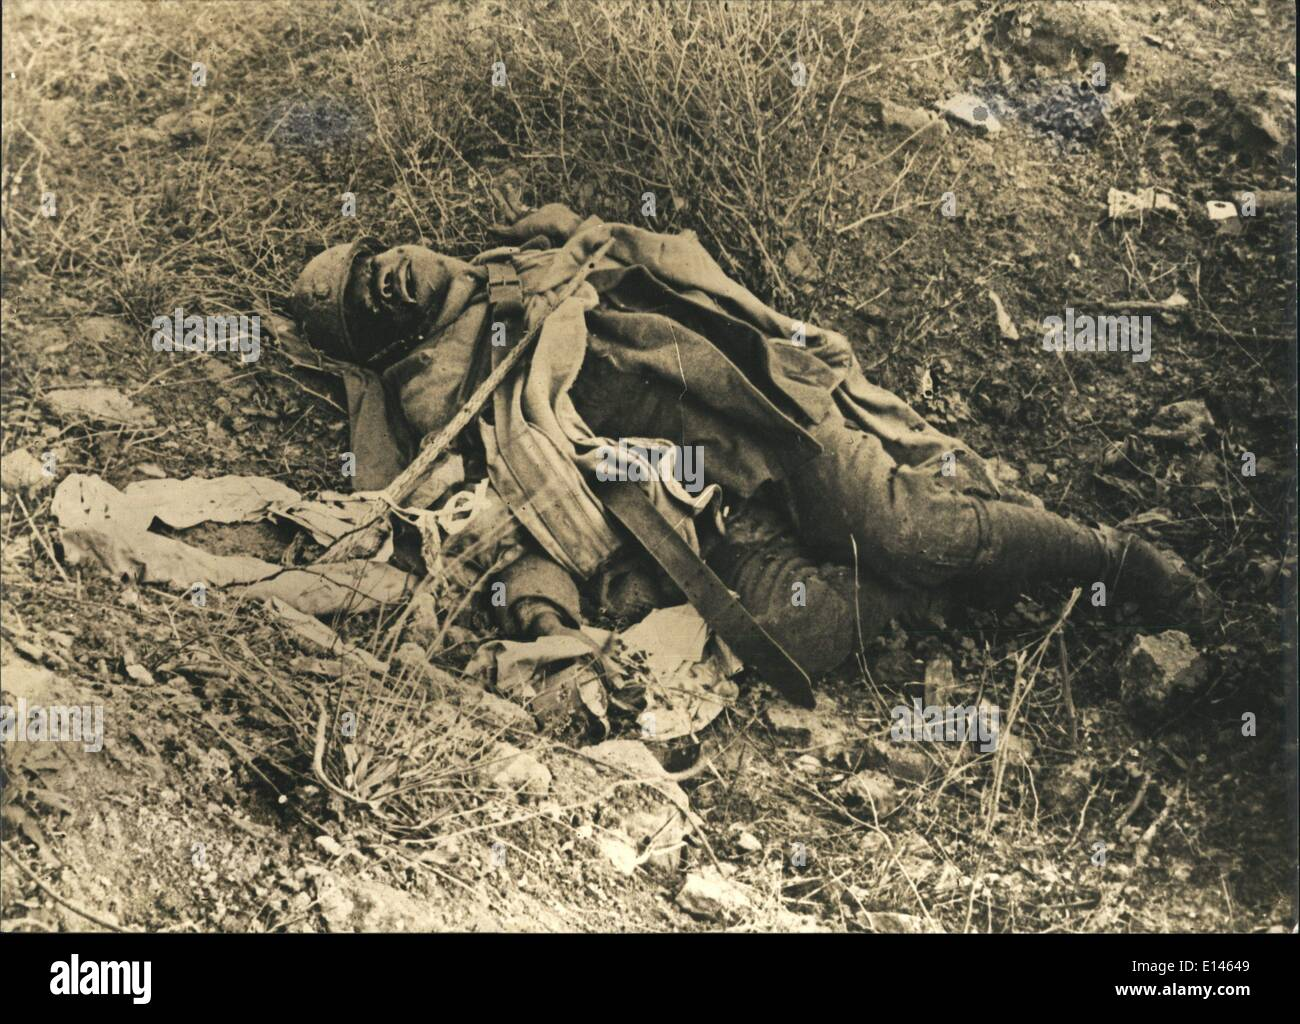 Apr. 16, 2012 - He was from the 67th regiment. the battle of Verdun was the longest in WWI (Wikipedia). Renaud Playing - Stock Image